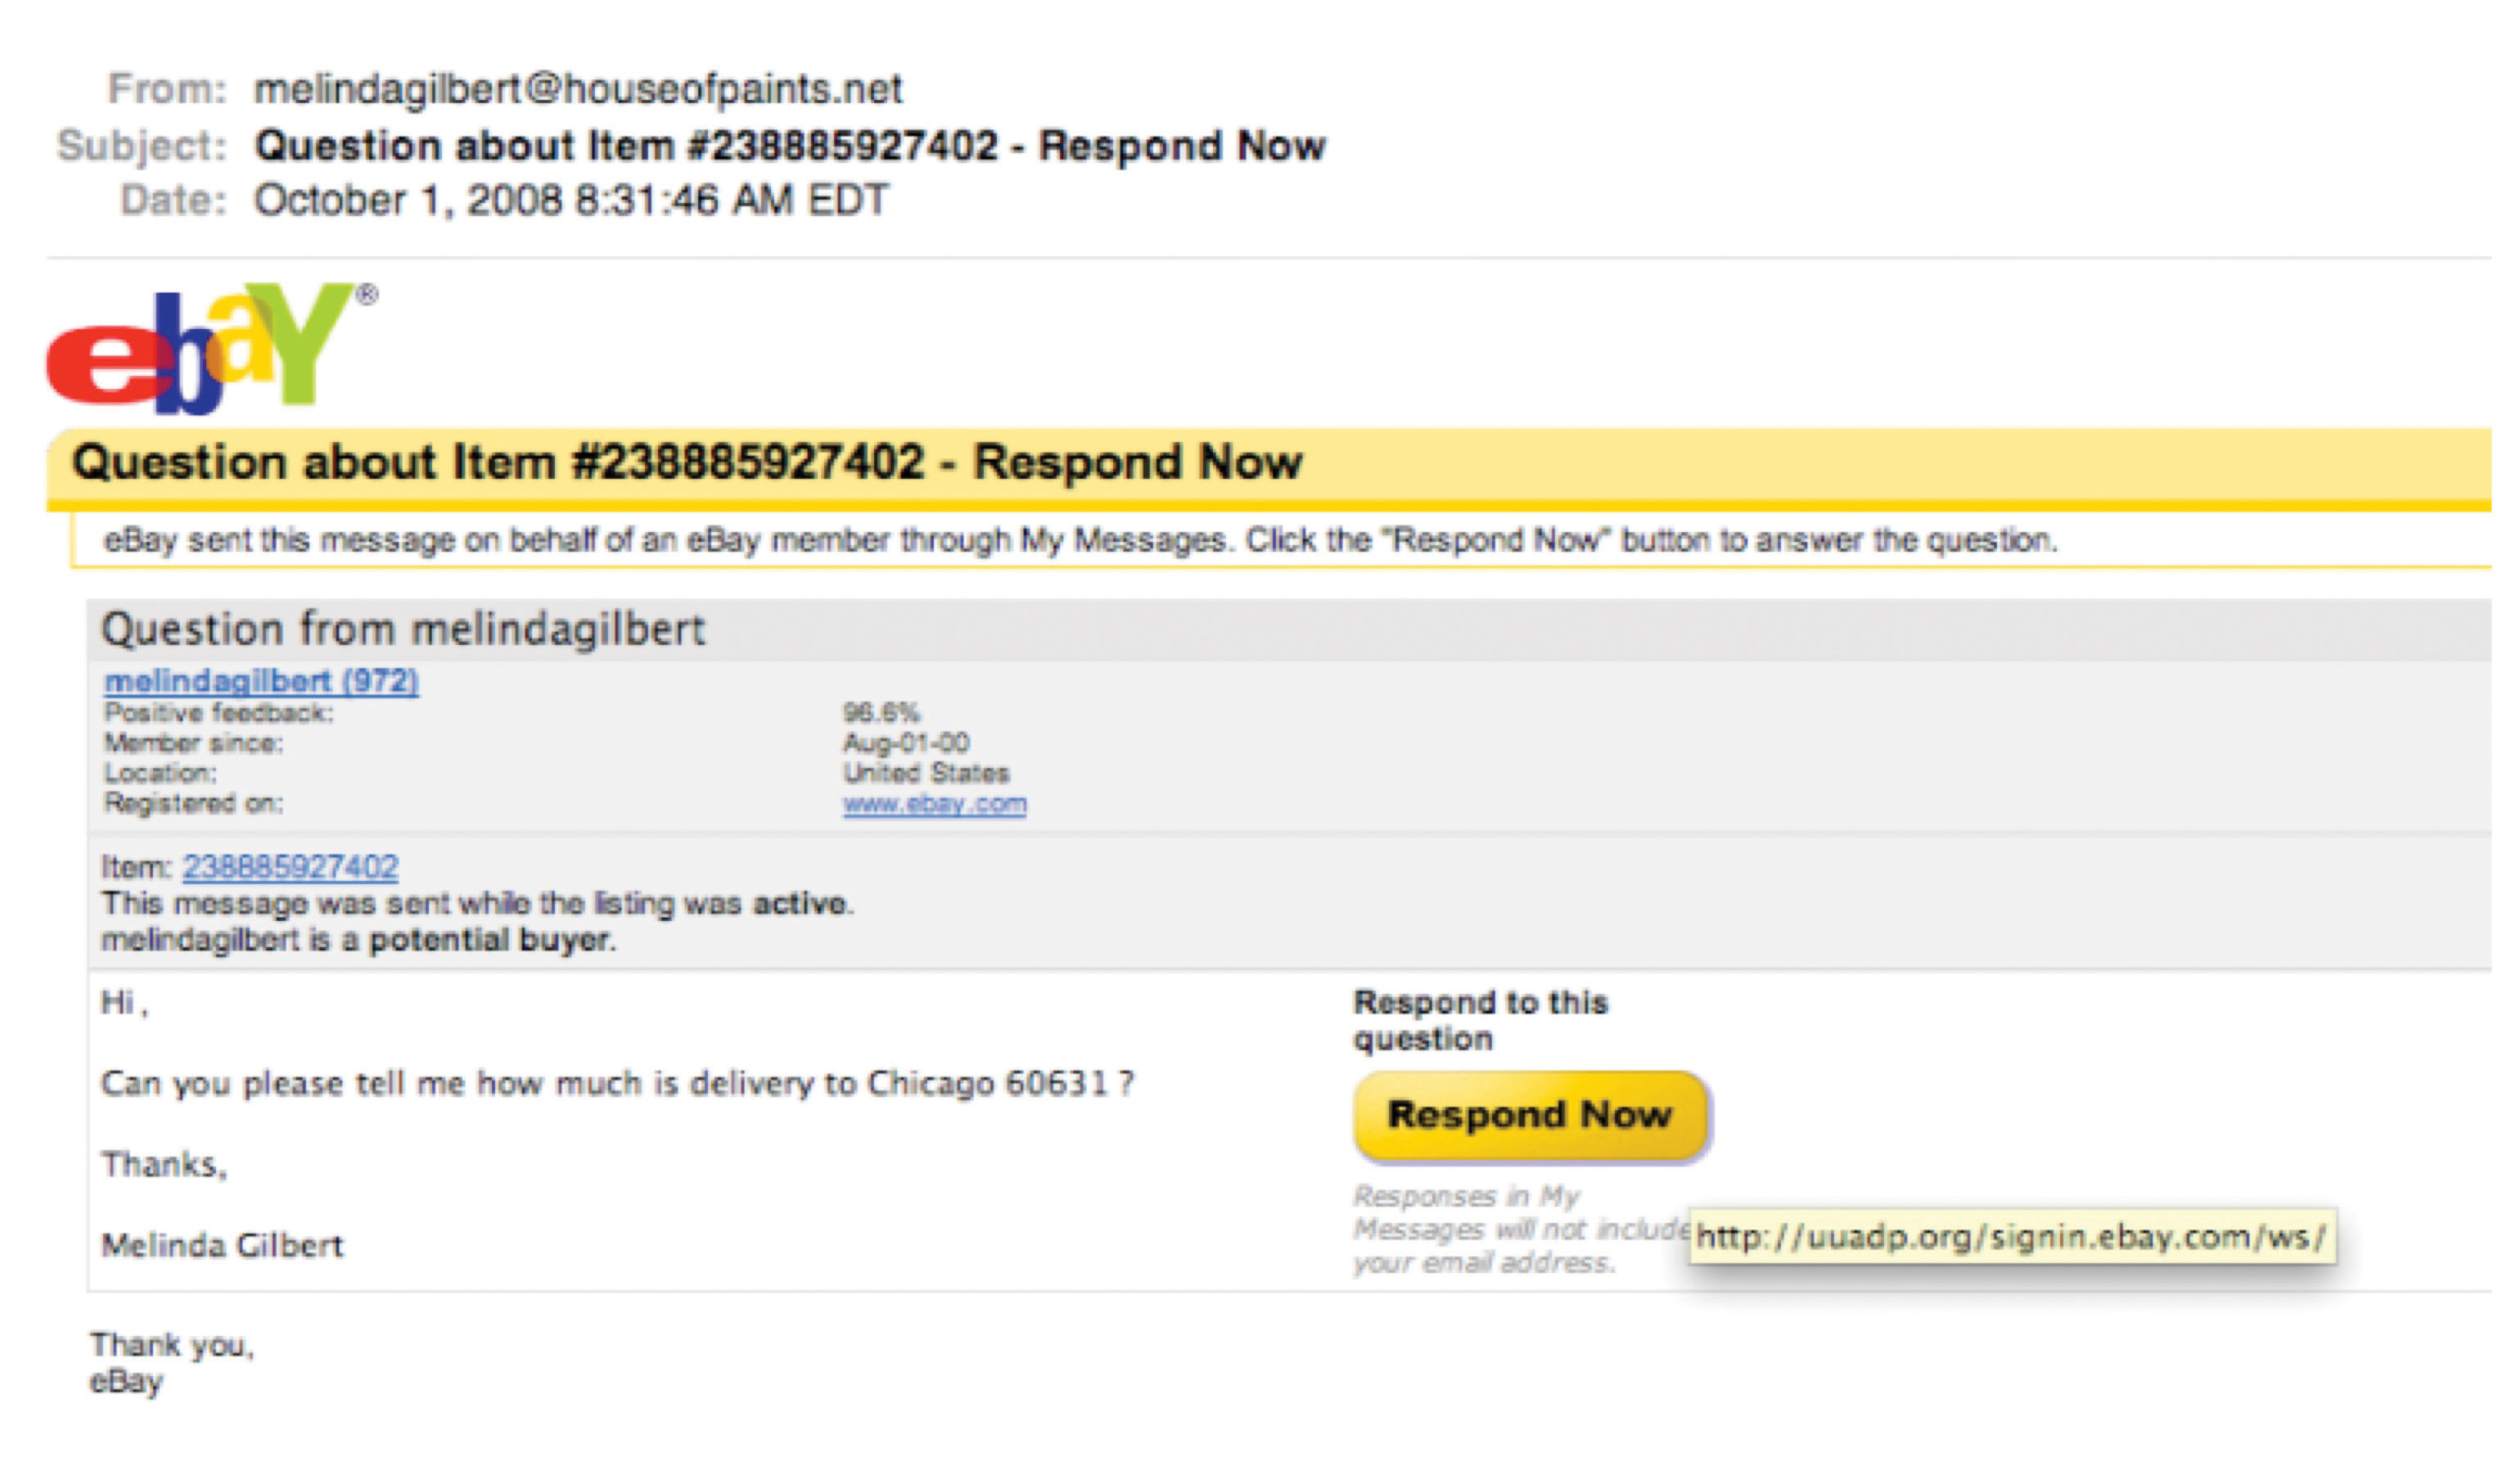 """This image is from a phishing scheme masquerading as an eBay message. The real destination is a compromised .org domain unassociated with eBay, but the phishers have created a directory at this domain named """"signin.ebay.com"""" in hopes that users will focus on that part of the URL and not recognize they're really headed to a non-eBay site."""